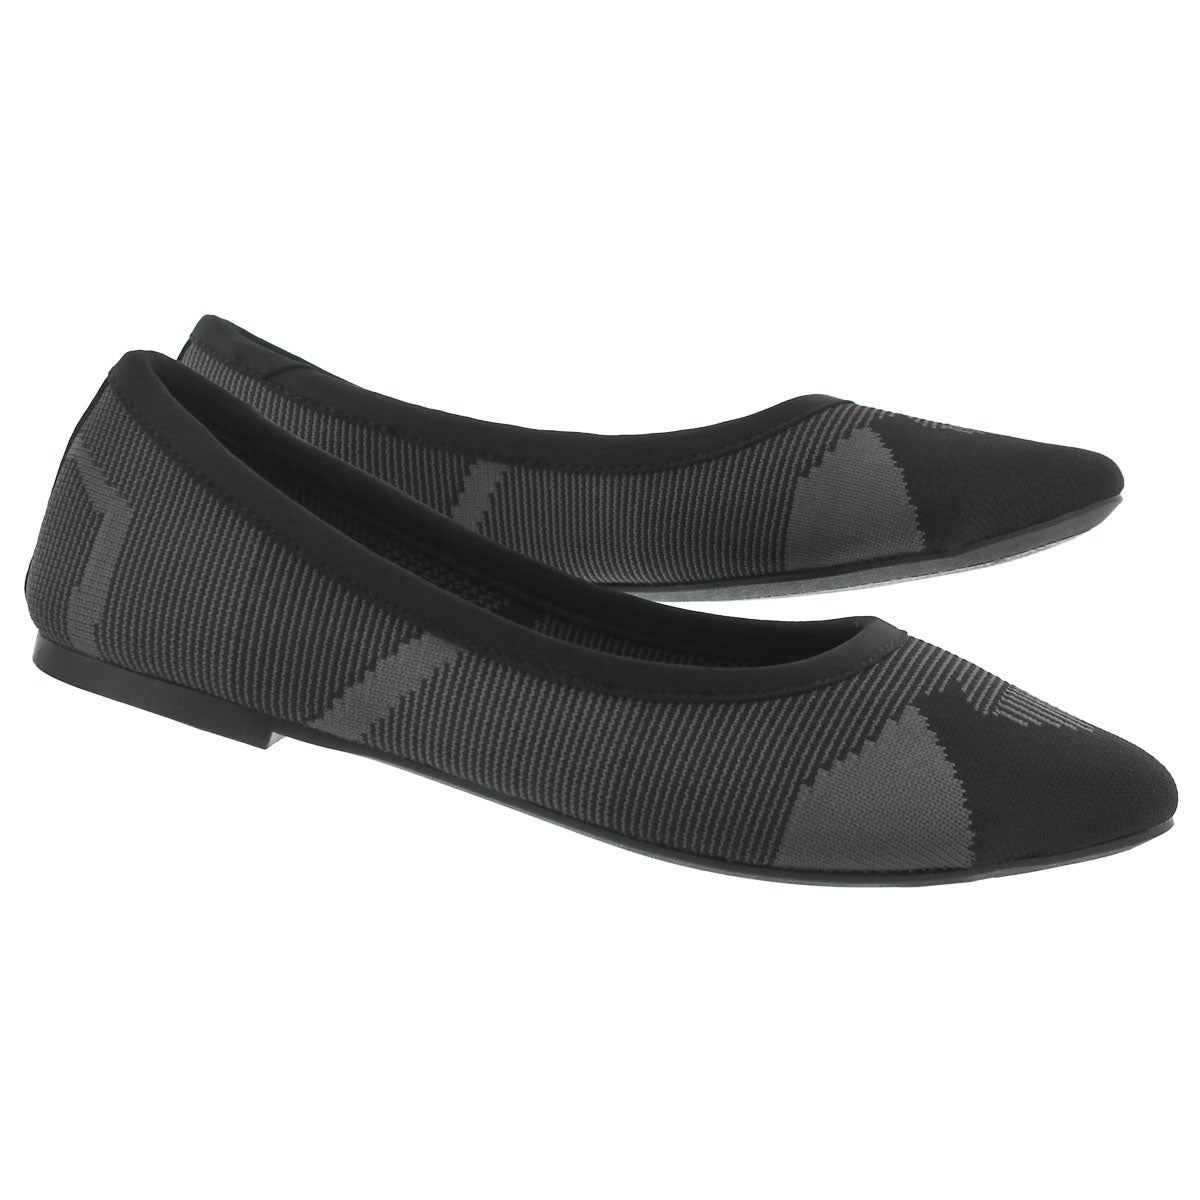 Lds Cleo Wham blk casual flat